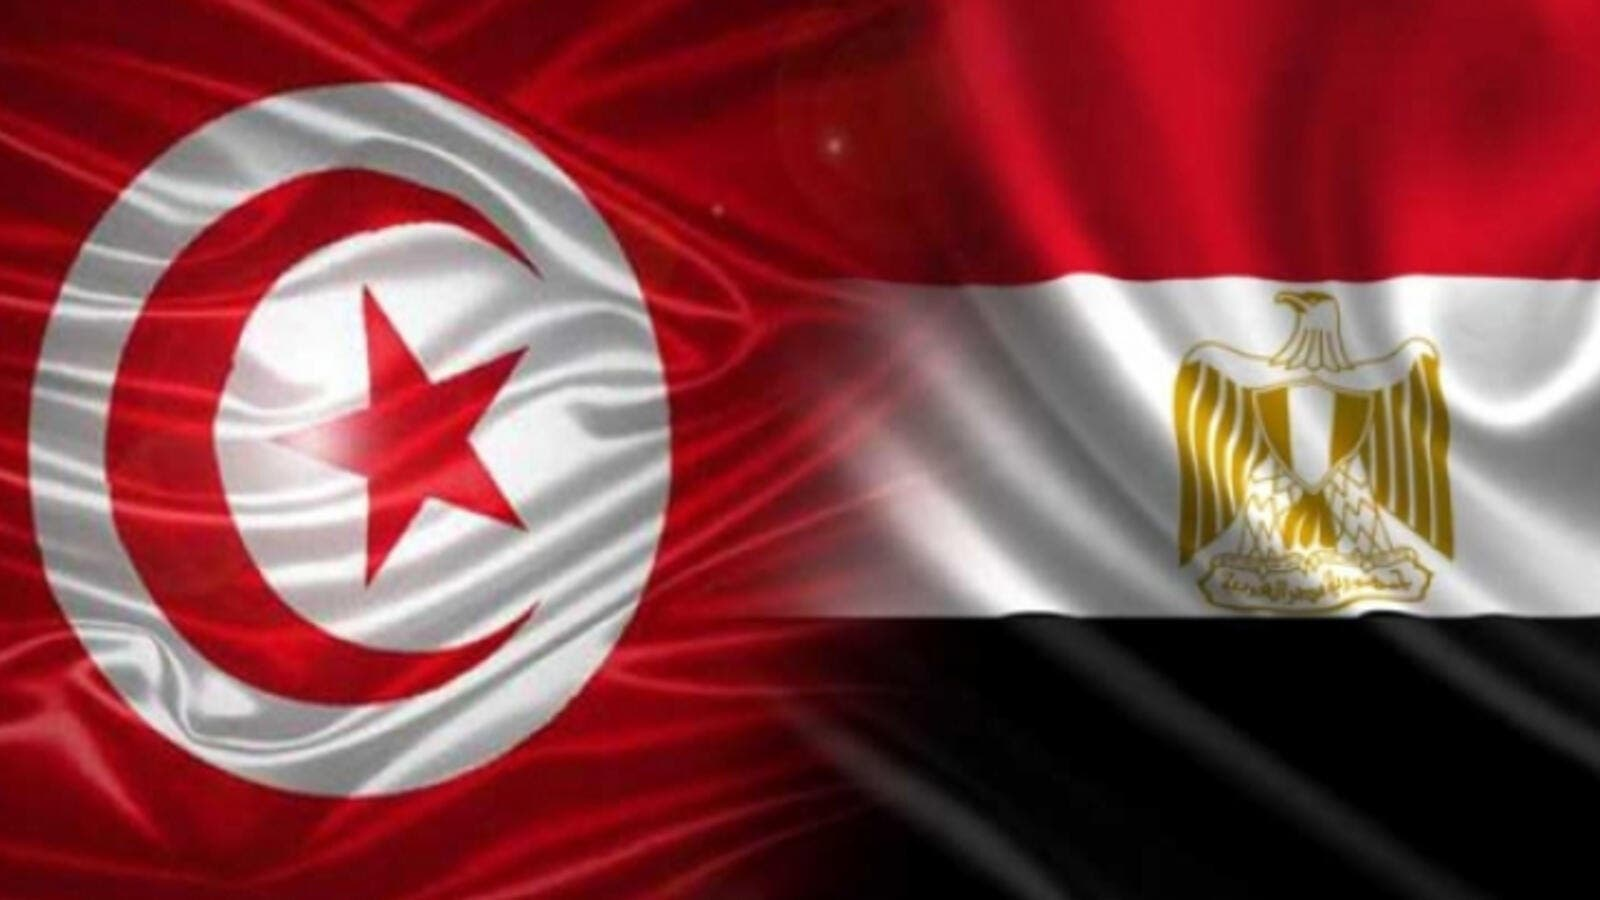 This sports week showed that the sports ministries in Egypt and Tunisia both equally care about the youth of their countries and wish for them to continue to work in harmony with one another